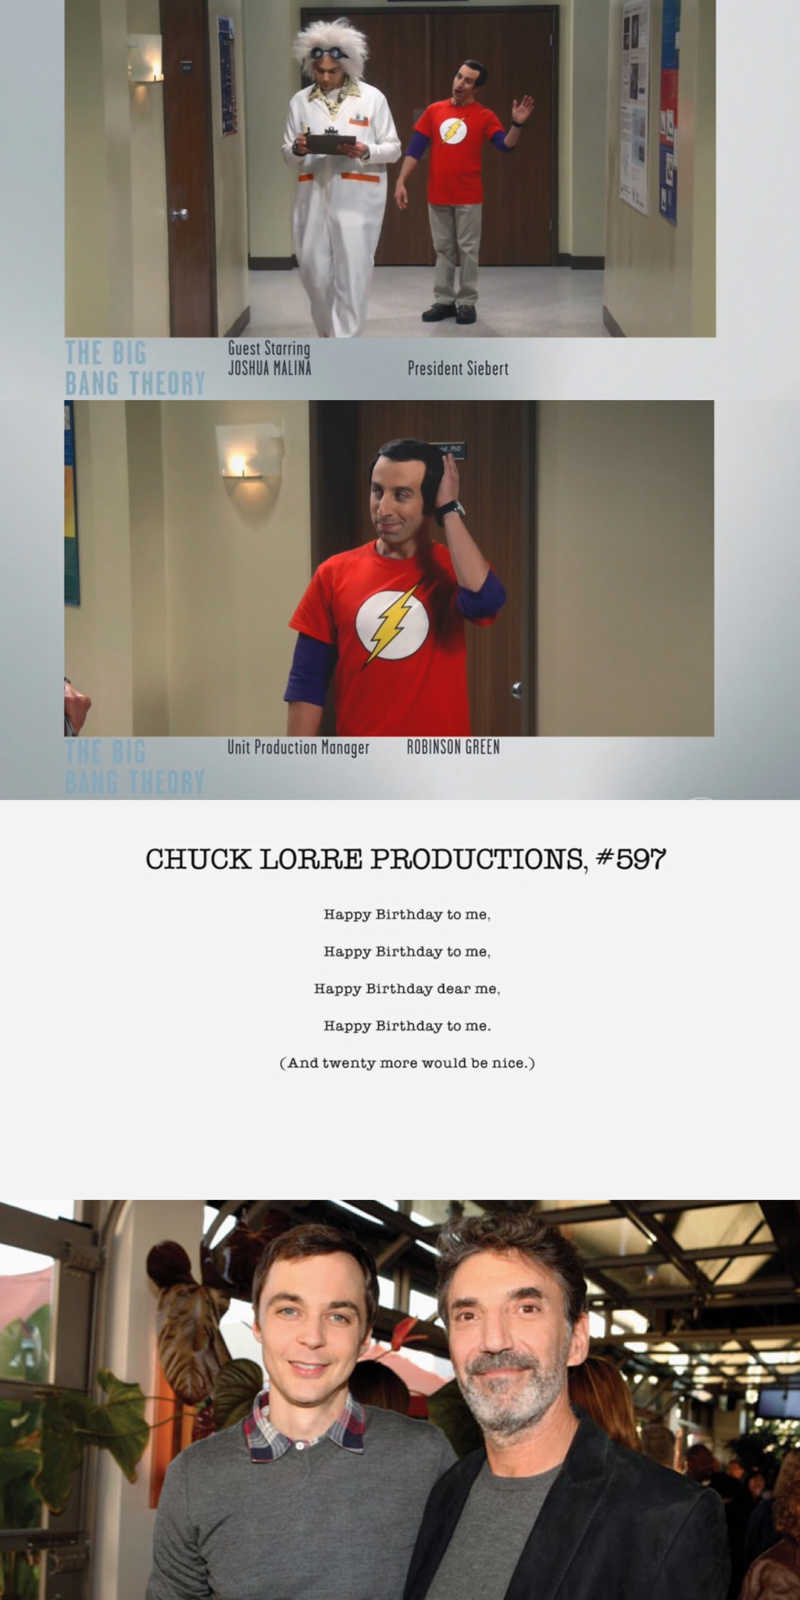 Oh my, Next episode is Halloween and Howard is dressing as Sheldon!! I'm laughing already 😂.  Oh and happy birthday to Chuck Lorre the sitcom genius mind behind all this 🎉❤️.